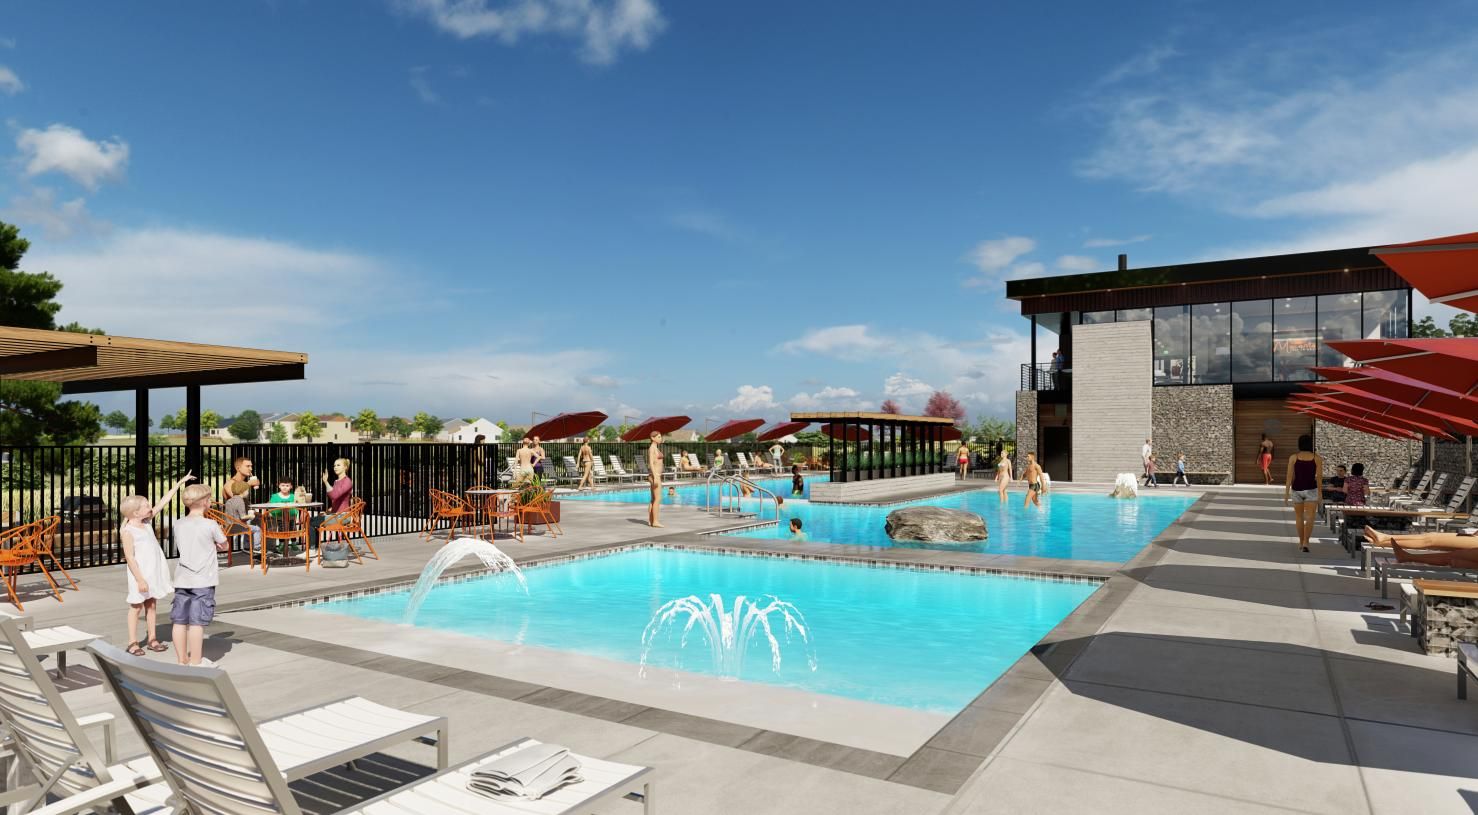 The Spoke Amenity Center pool and water play area